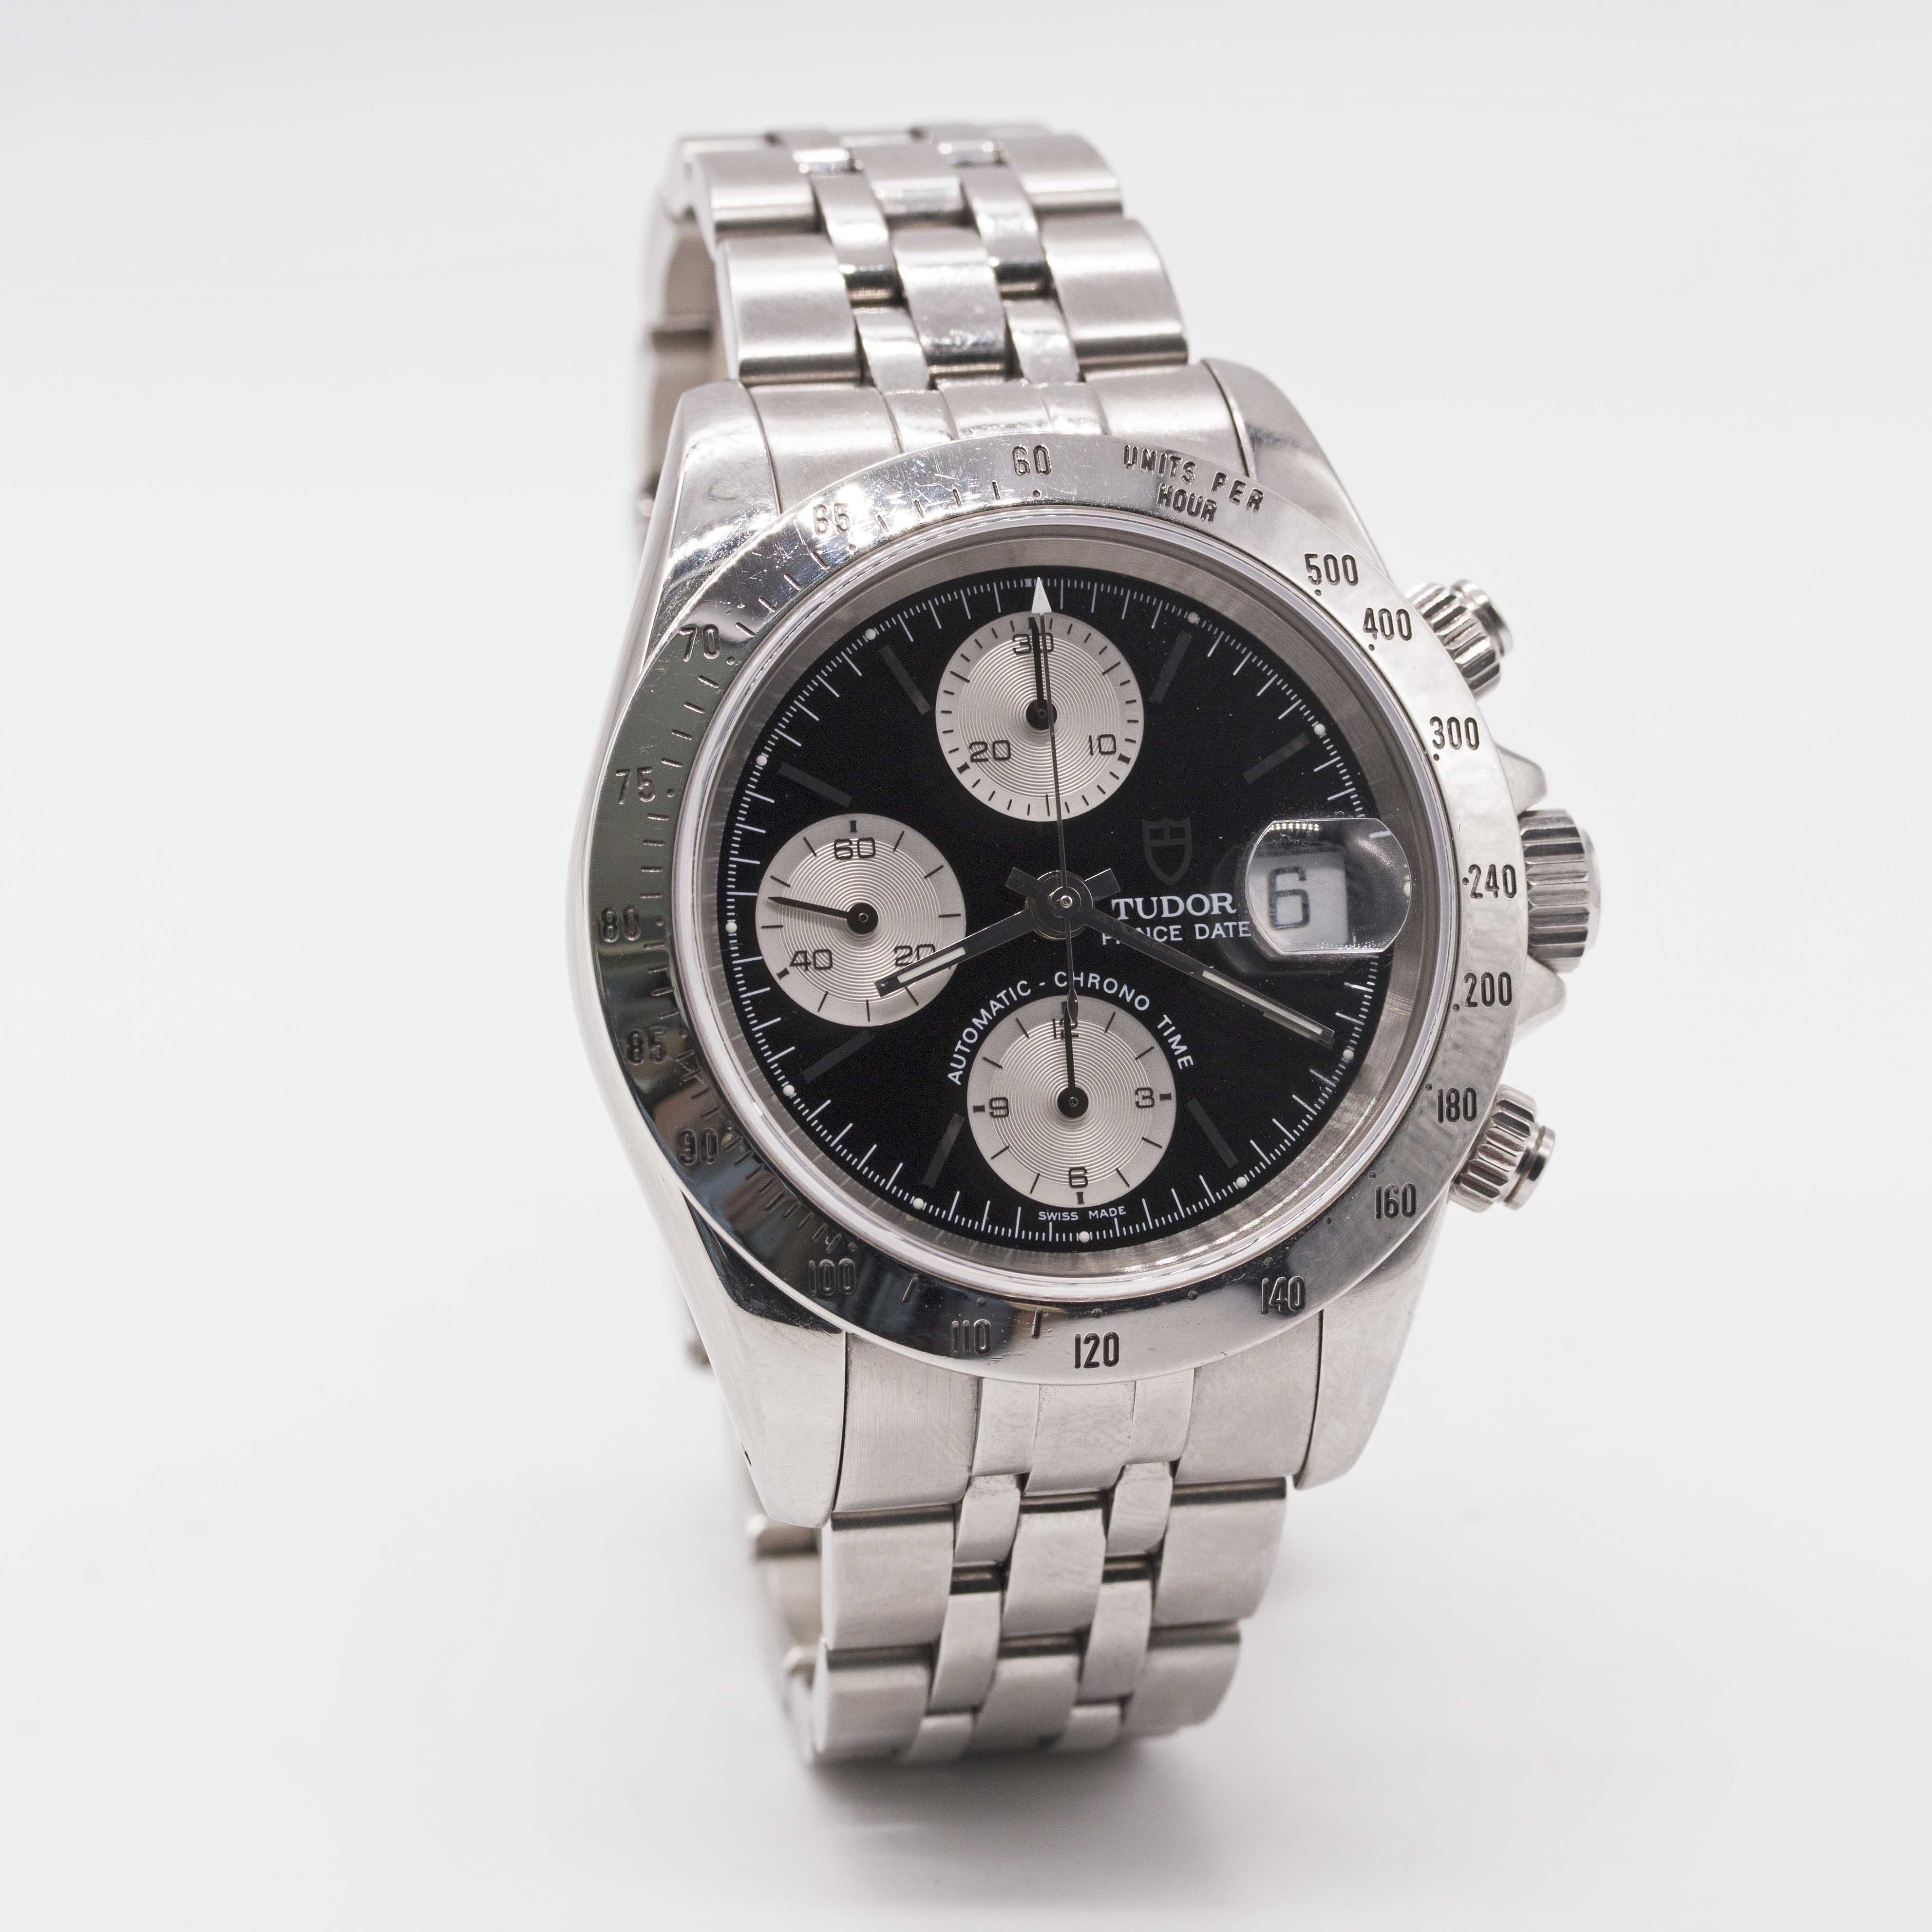 Lot 4 - A GENTLEMAN'S STAINLESS STEEL ROLEX TUDOR PRINCE DATE AUTOMATIC CHRONO TIME CHRONOGRAPH BRACELET